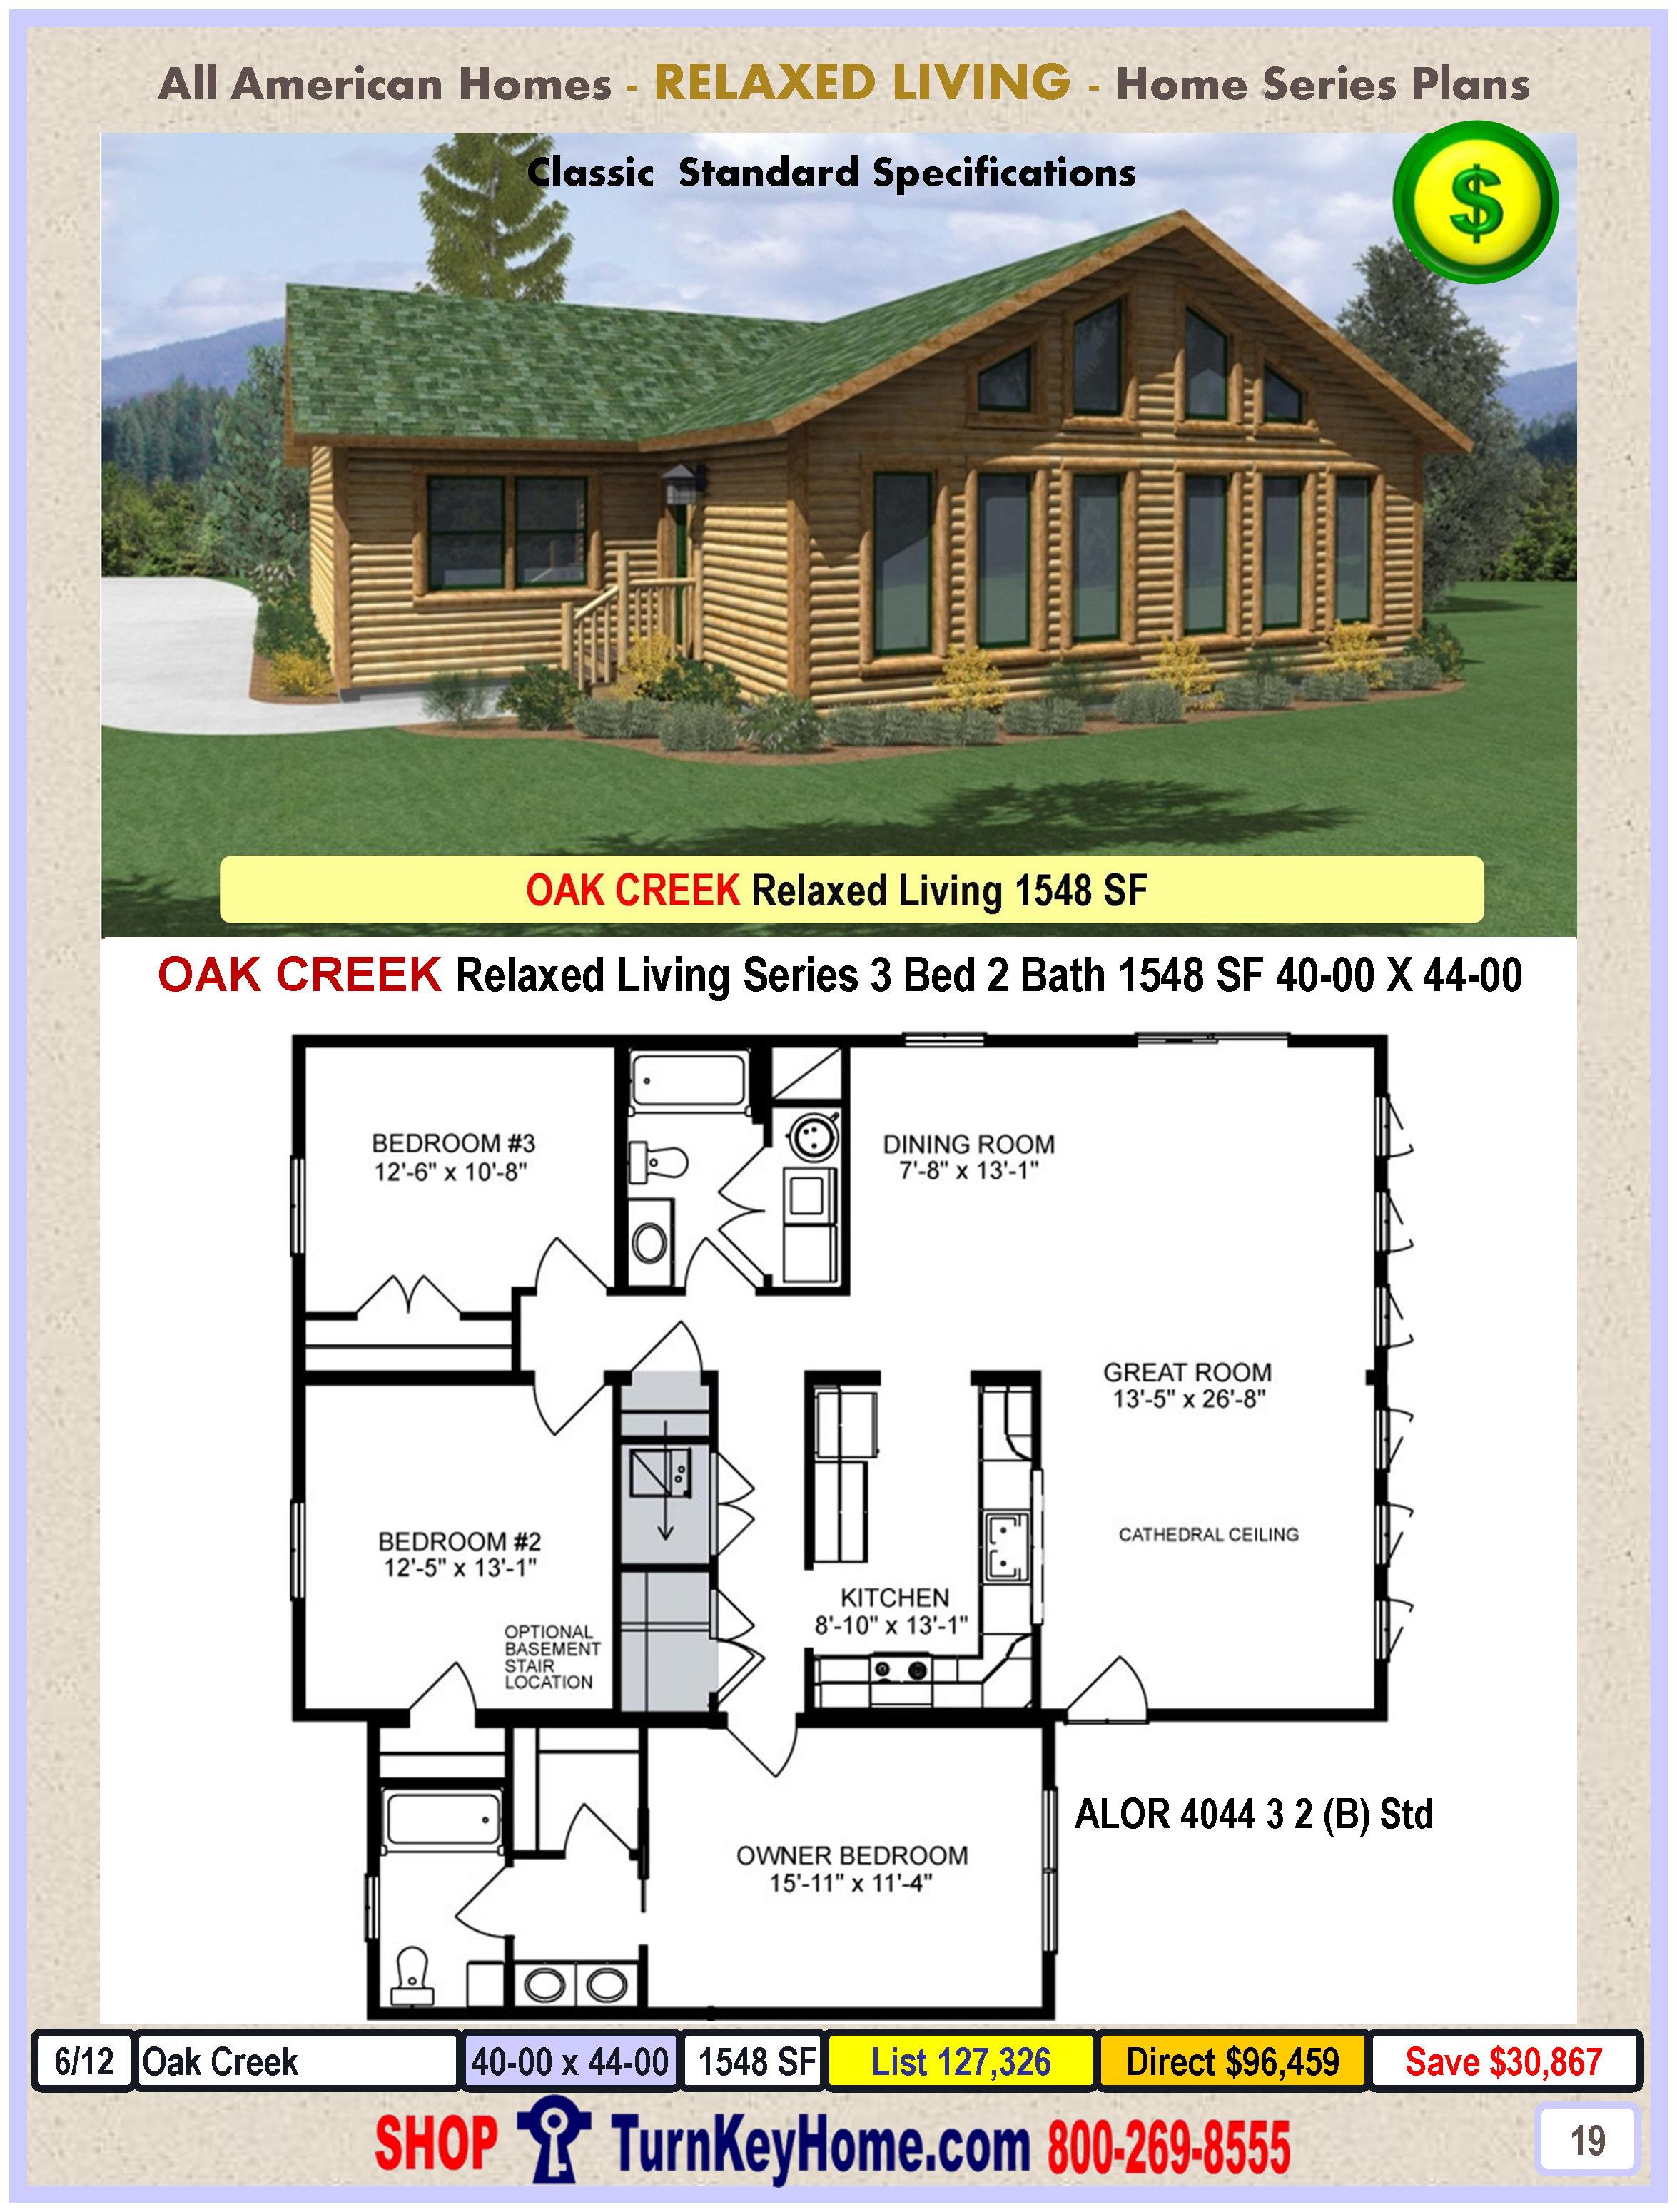 All.American.Homes.Relaxed.Living Series.OakCreek.Modular.Cape.Alpine.Chalet.ALOR.4044.3.2.(B).Std.Page.19.032615